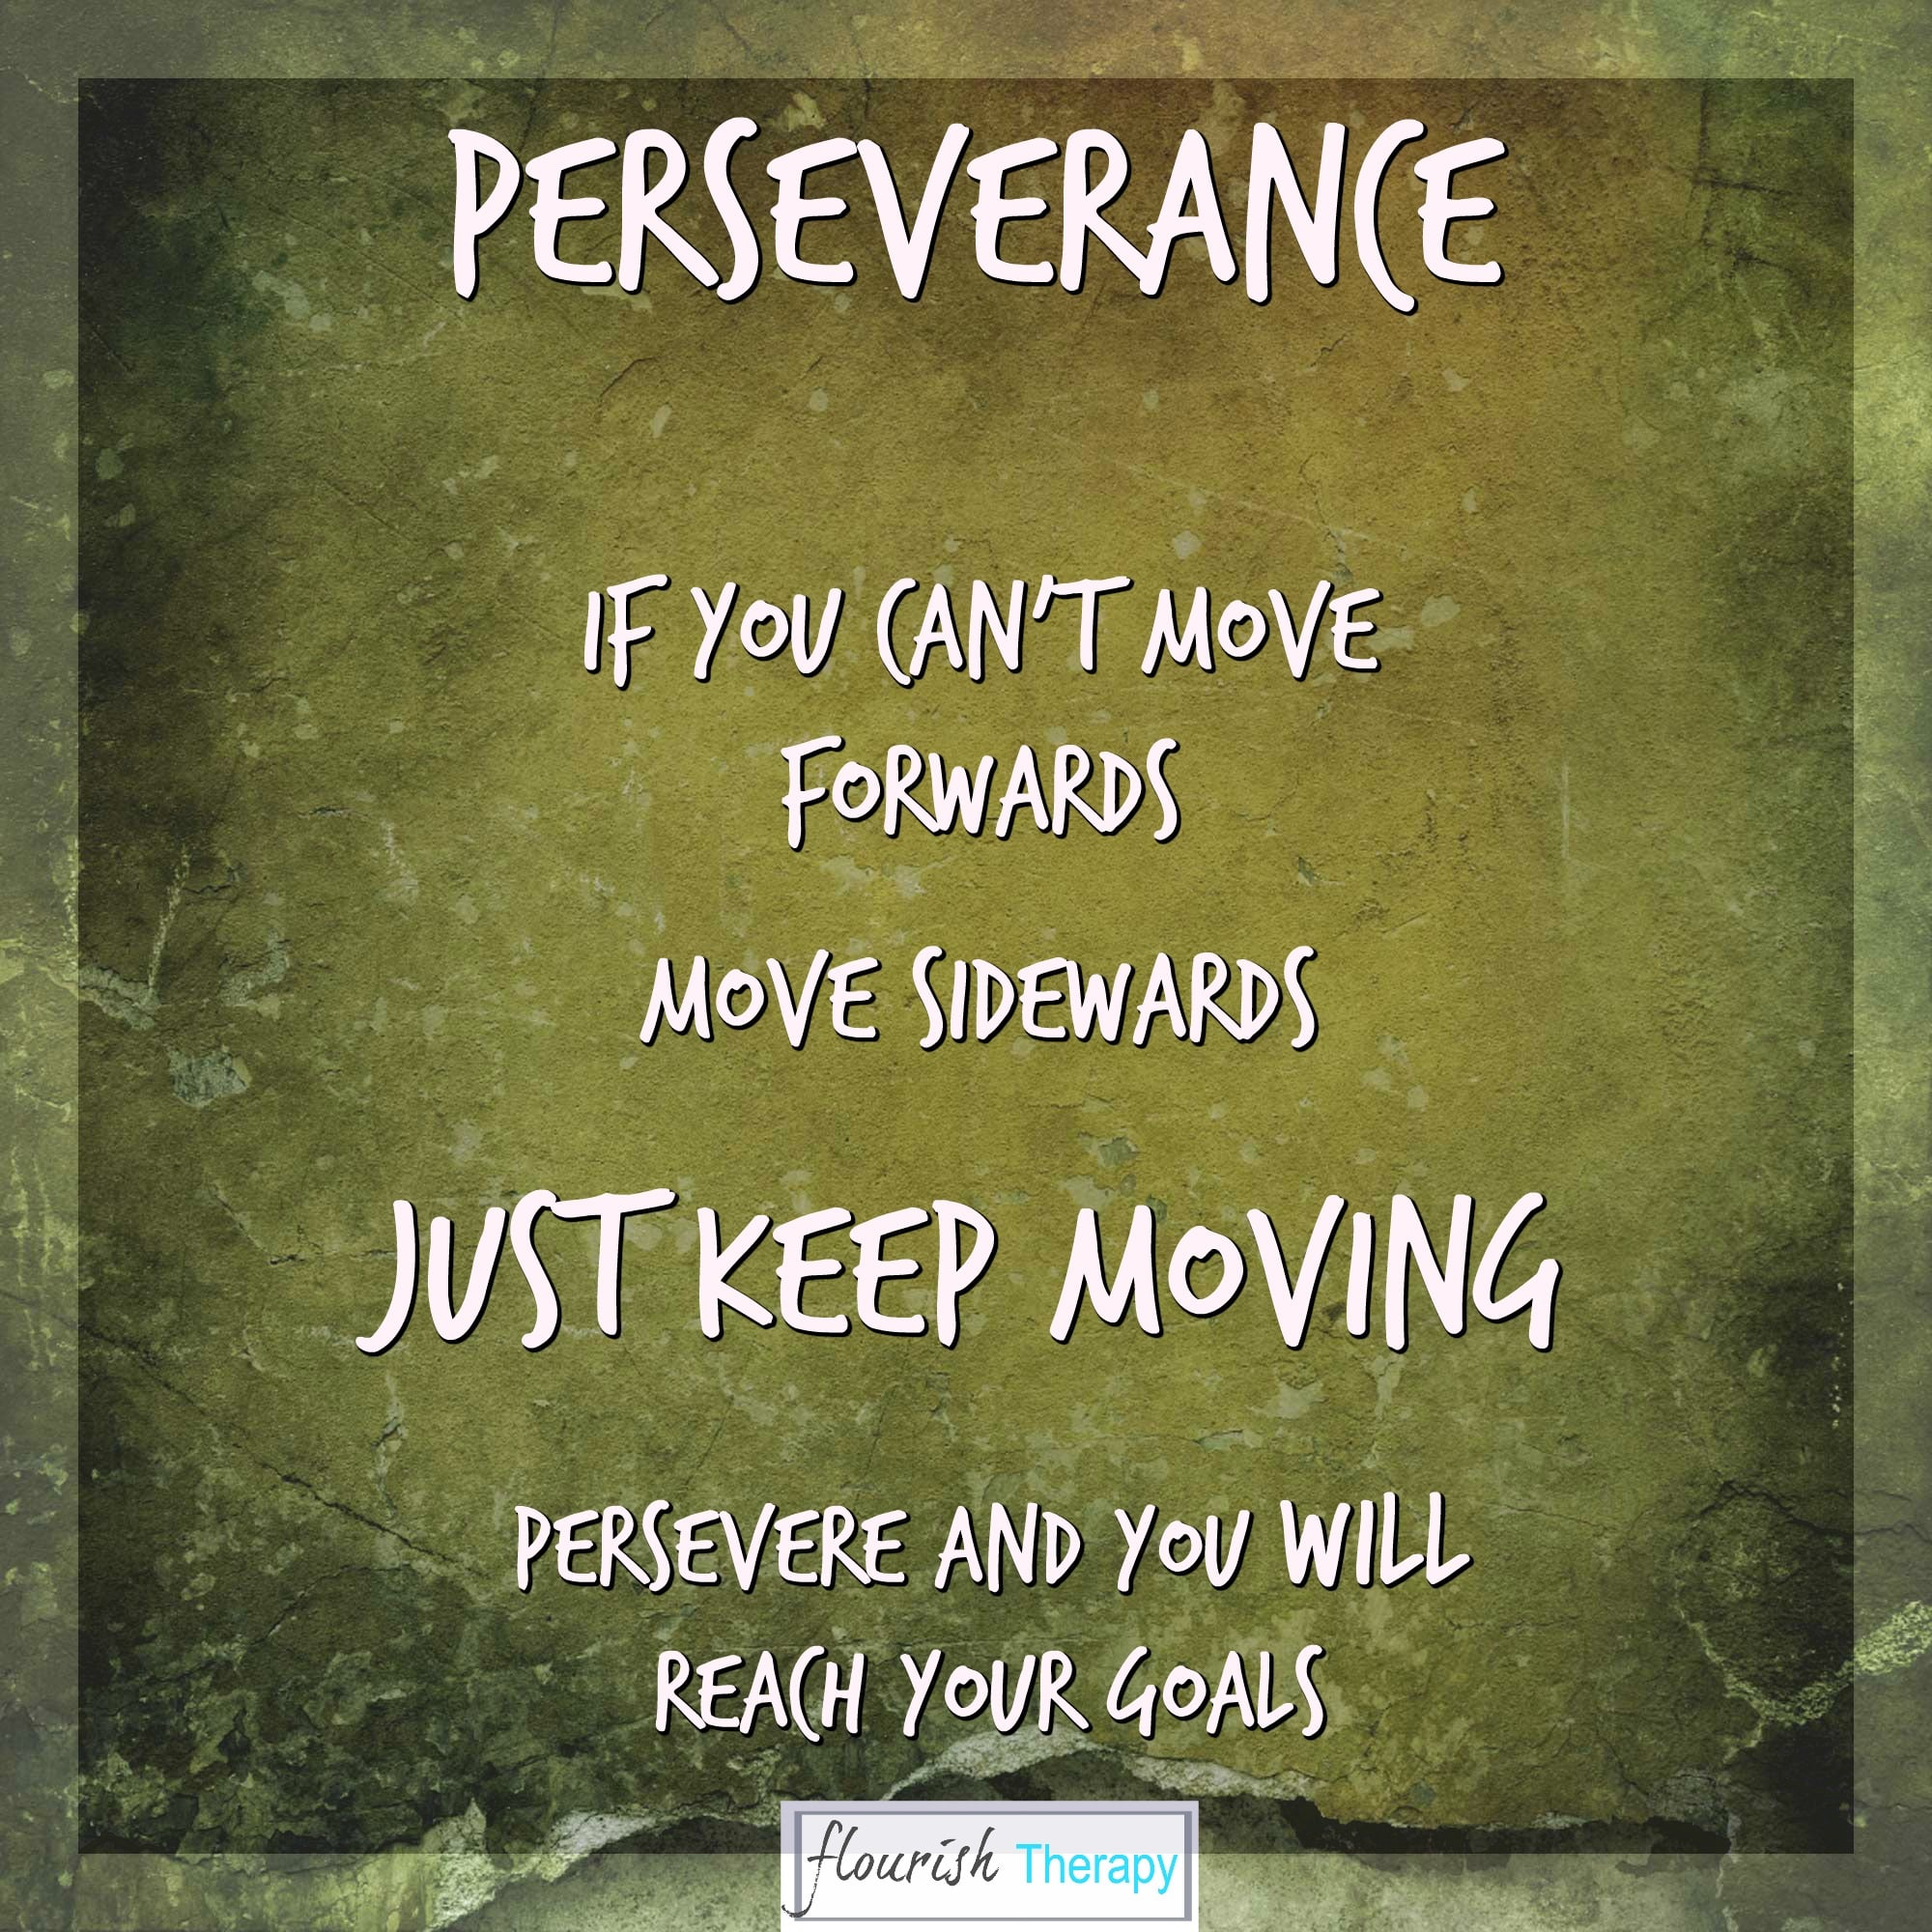 Persistence Motivational Quotes: Psychotherapy, Hypnotherapy